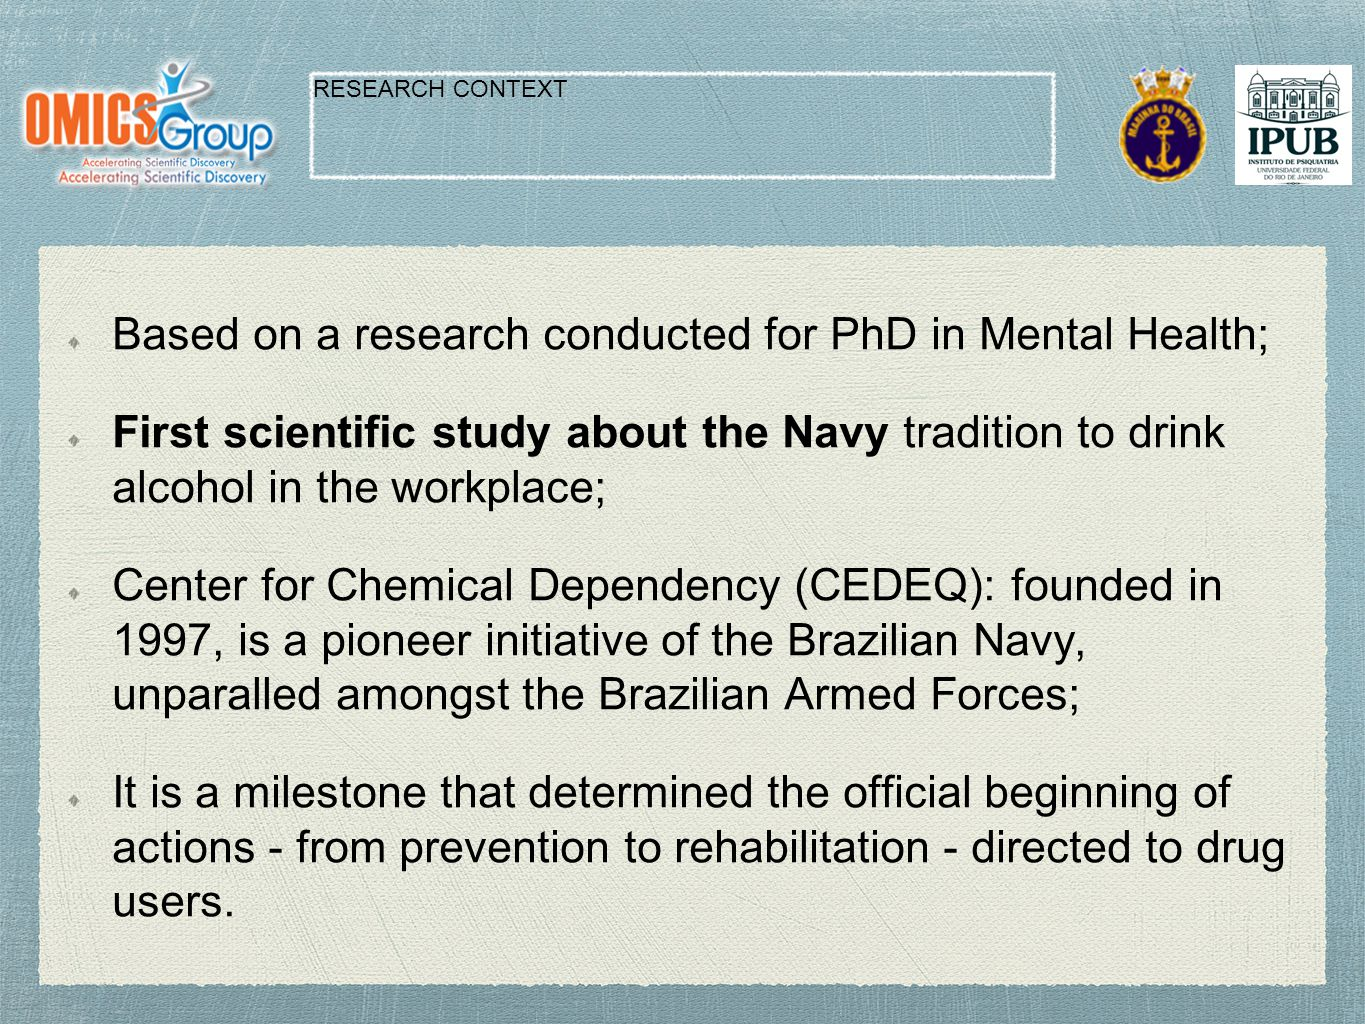 Based on a research conducted for PhD in Mental Health; First scientific study about the Navy tradition to drink alcohol in the workplace; Center for Chemical Dependency (CEDEQ): founded in 1997, is a pioneer initiative of the Brazilian Navy, unparalled amongst the Brazilian Armed Forces; It is a milestone that determined the official beginning of actions - from prevention to rehabilitation - directed to drug users.